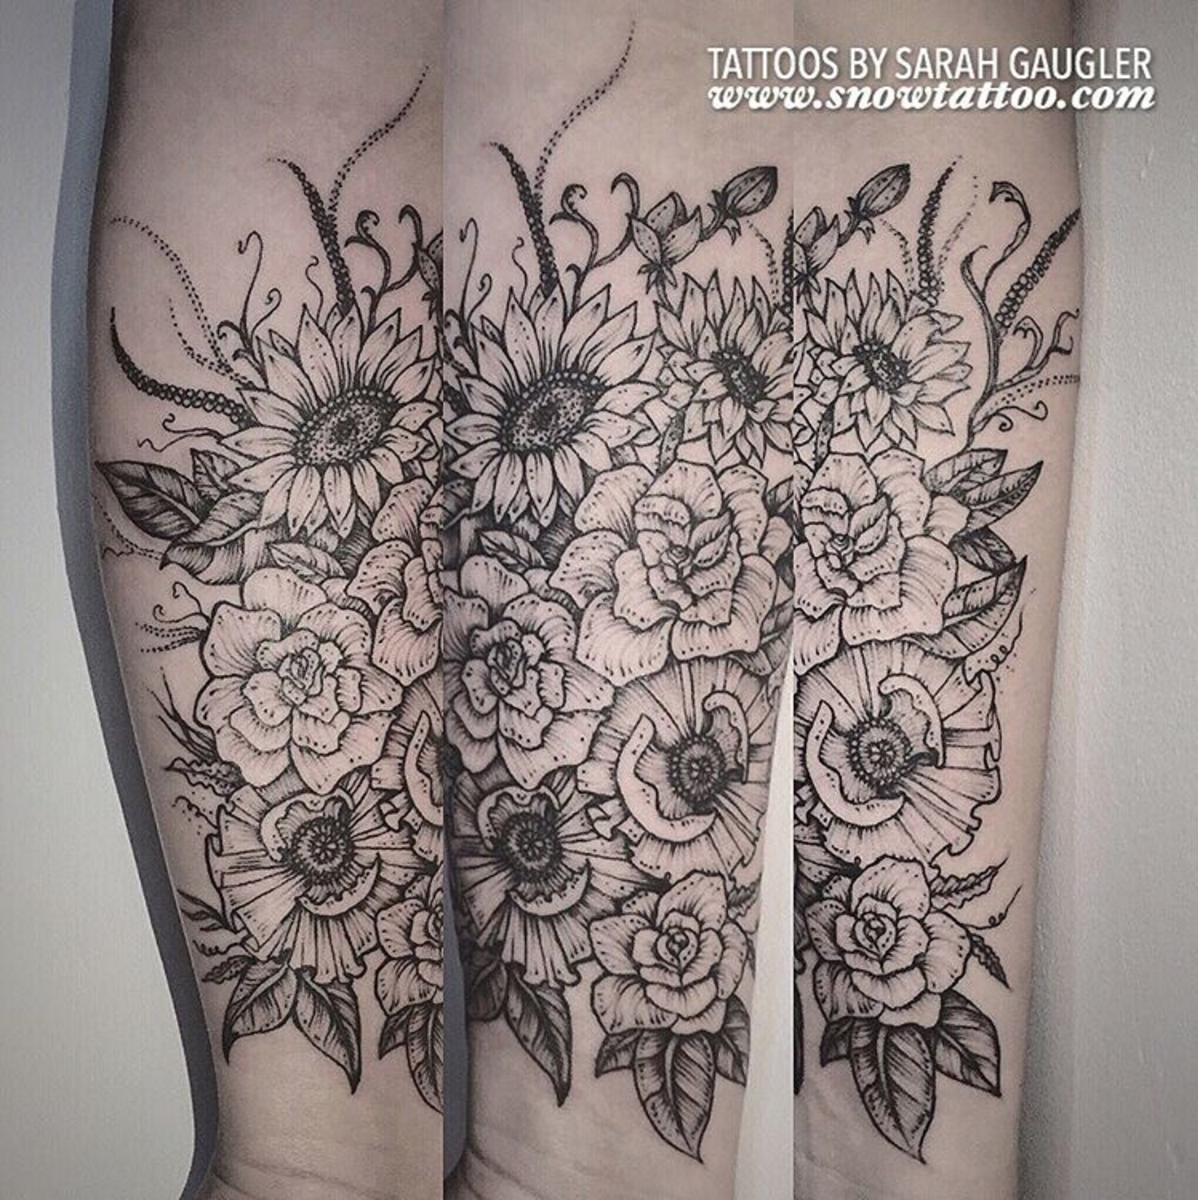 Cusotm+Floral_Garden_Flowers_Poppy_Poppies_Sunflower_Sunflowers+Tattoo+Line+Art+Original+Flash+Tattoo+by+Sarah+Gaugler+at+Snow+Tattoo+New+York+NYC.jpg